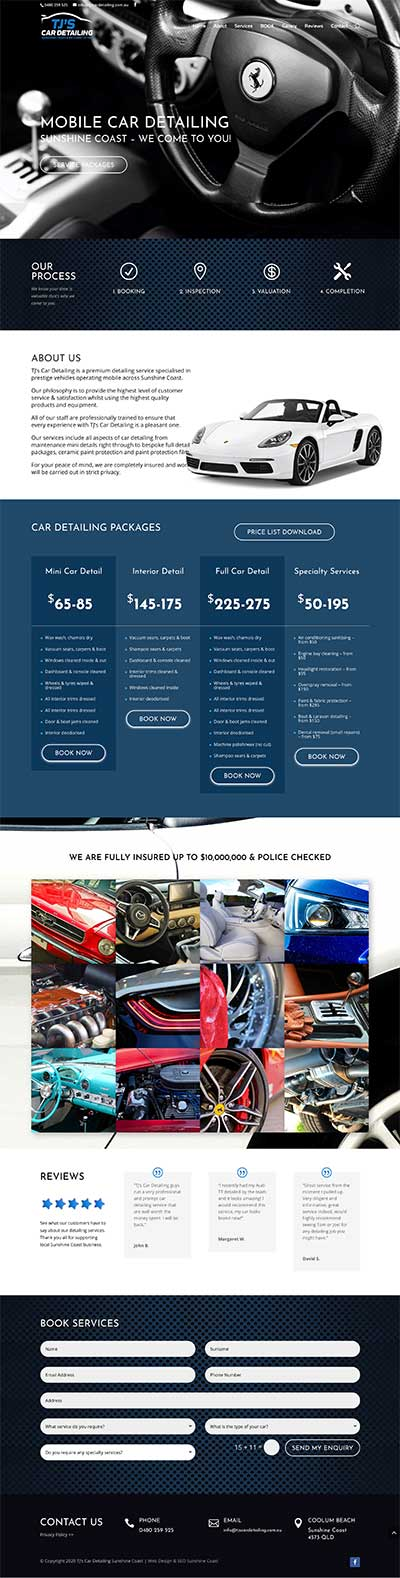 Car Detailing Web Design Sunshine Coast